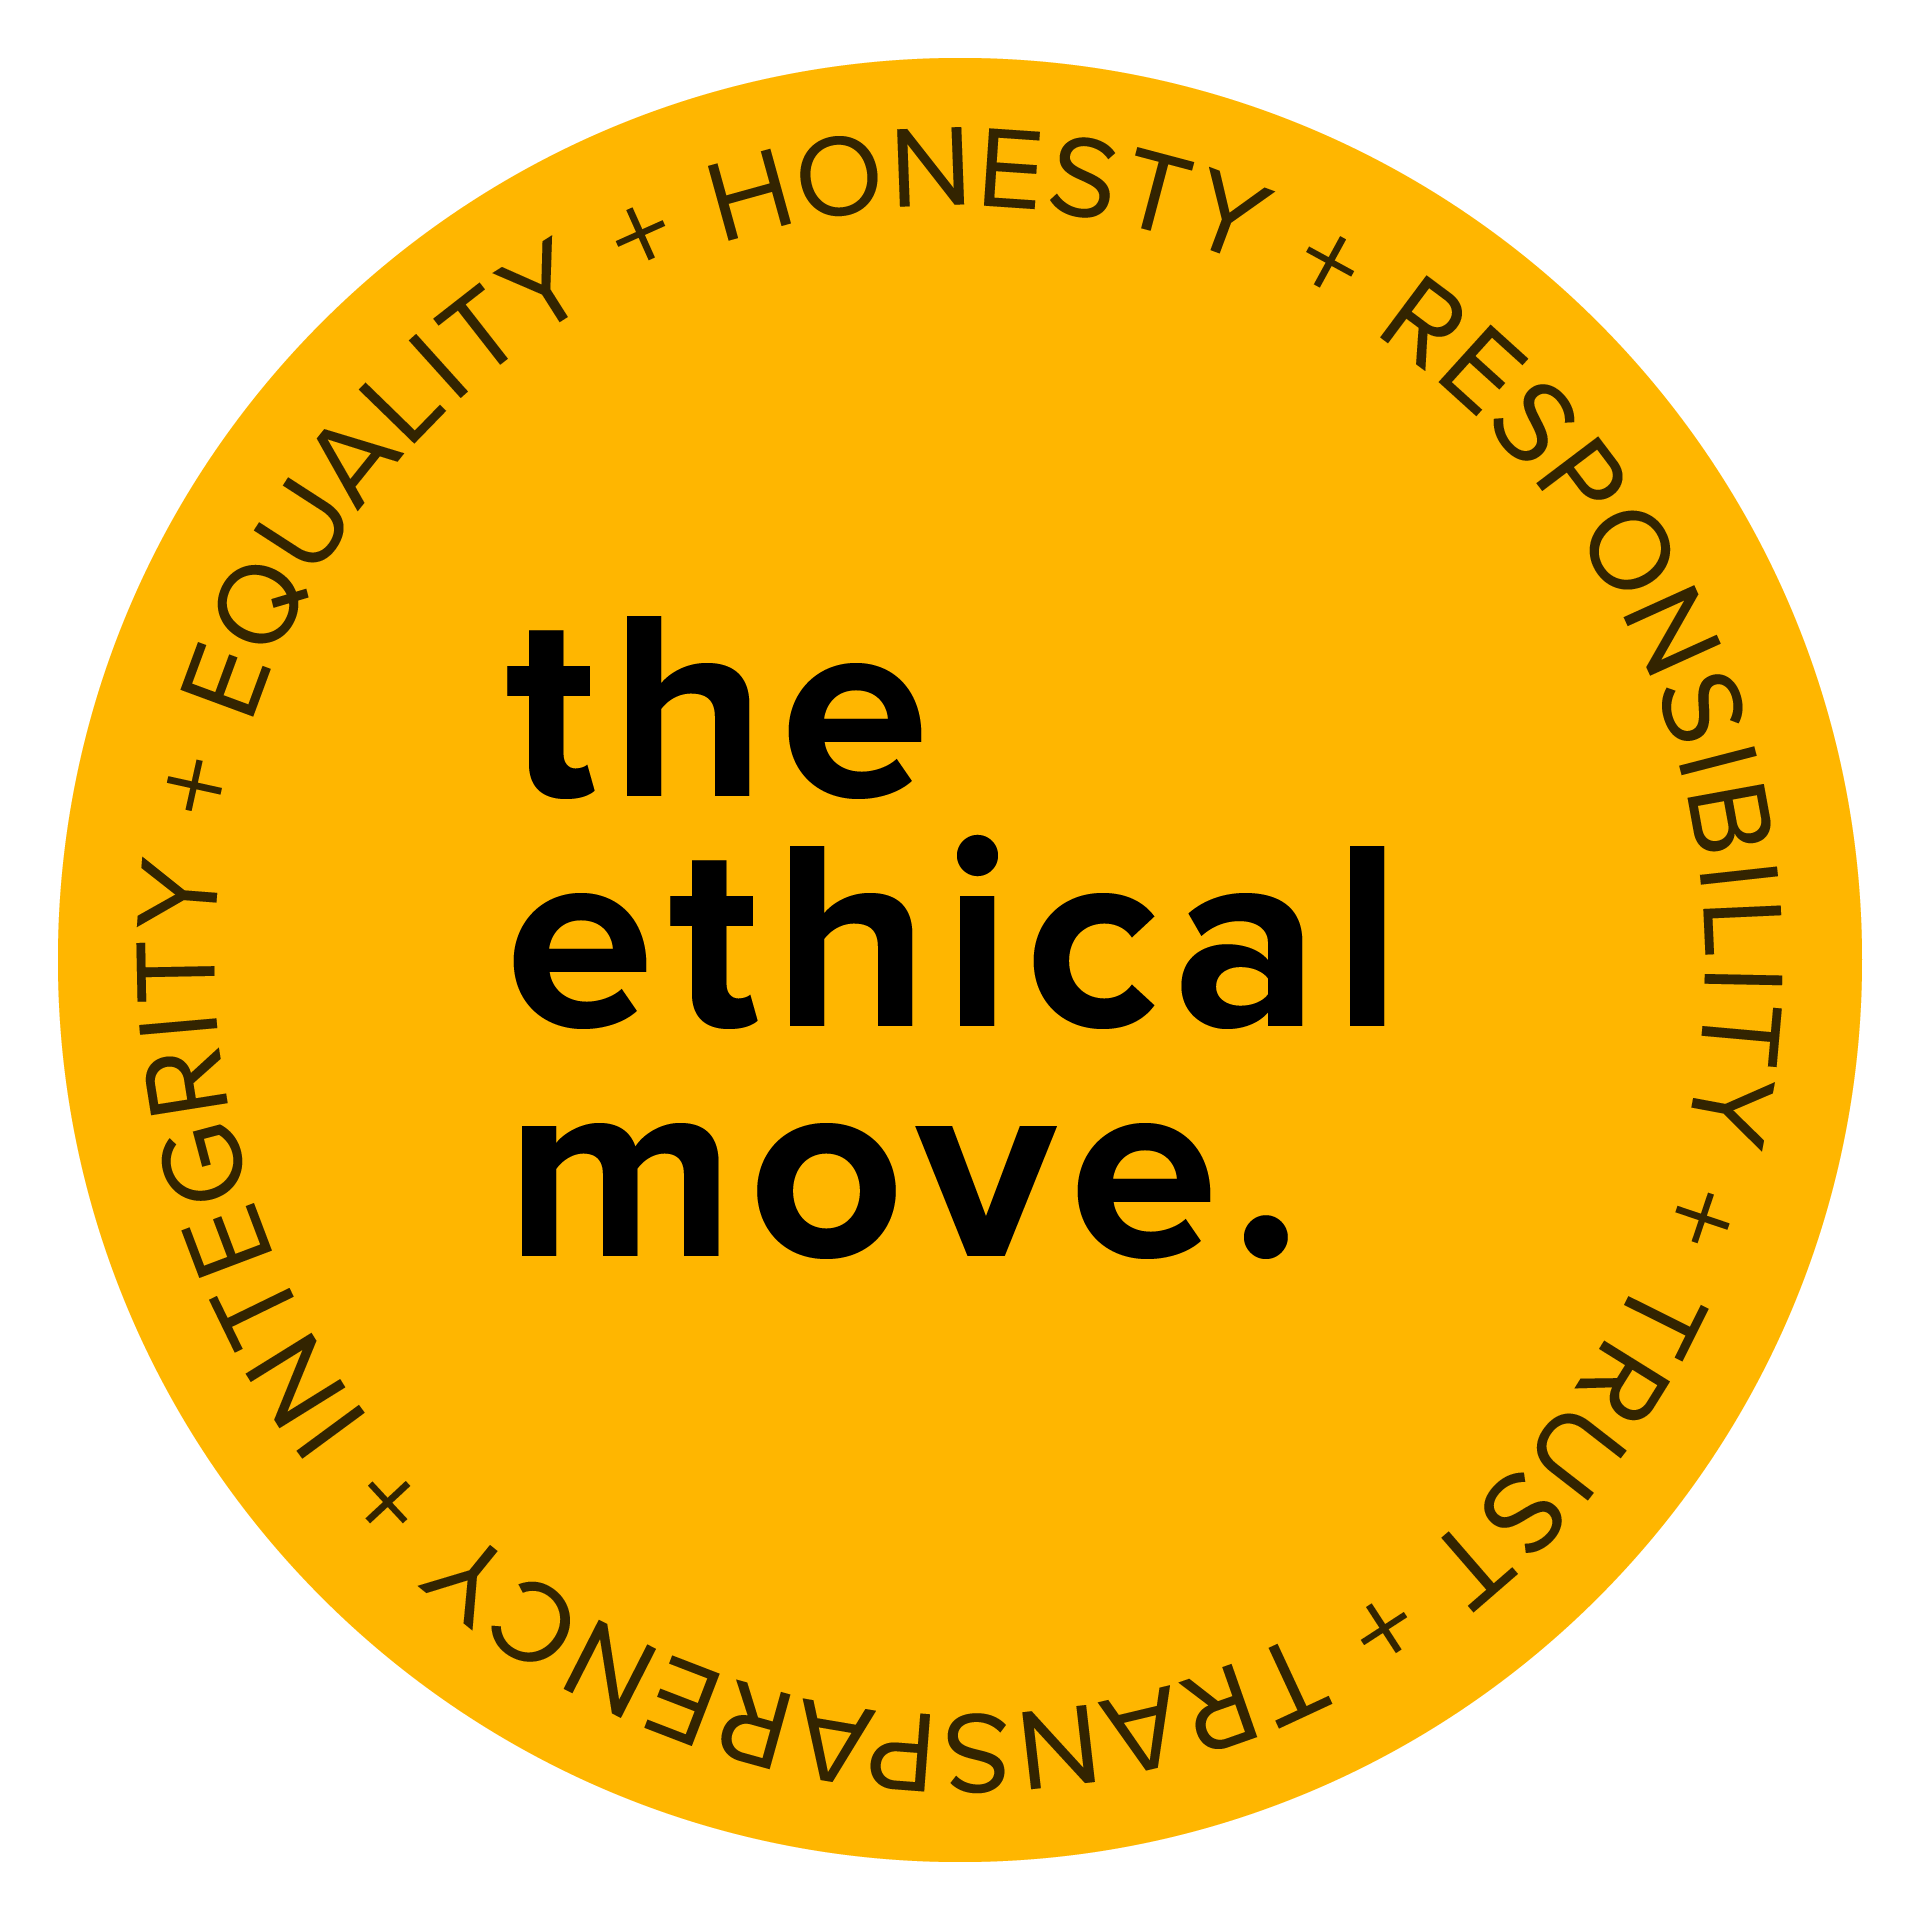 the ethical move